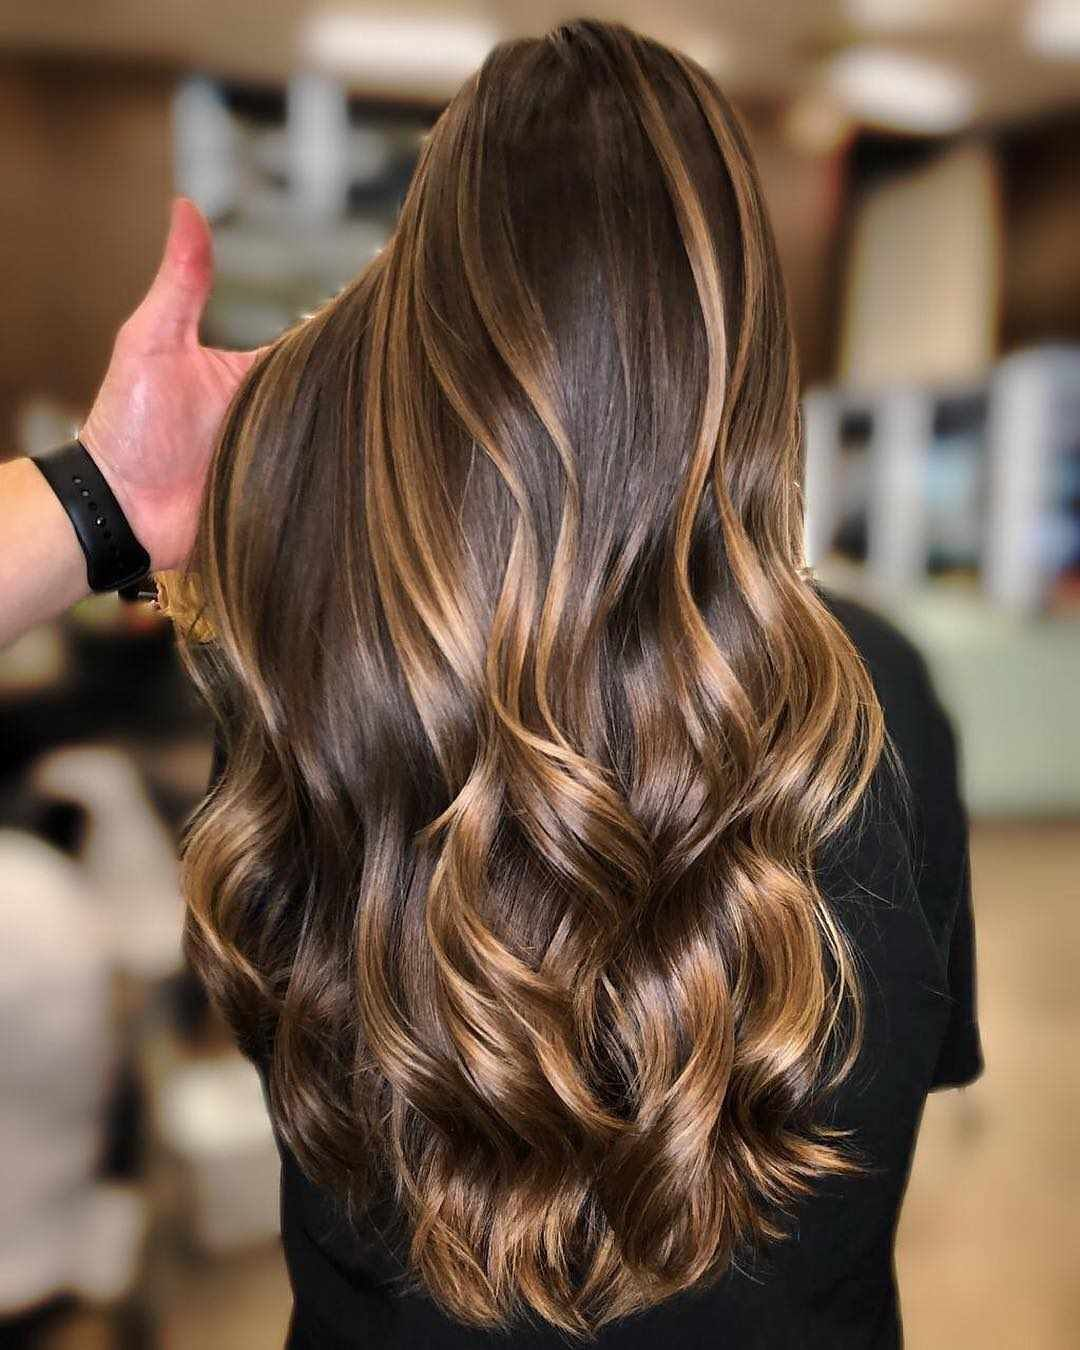 30 Balayage Hair Ideas For Long And Short Hair 2019 Balayagehair Balayagehaircut Balayagehairstyle Blondehair Hair Styles Long Hair Styles Balayage Hair